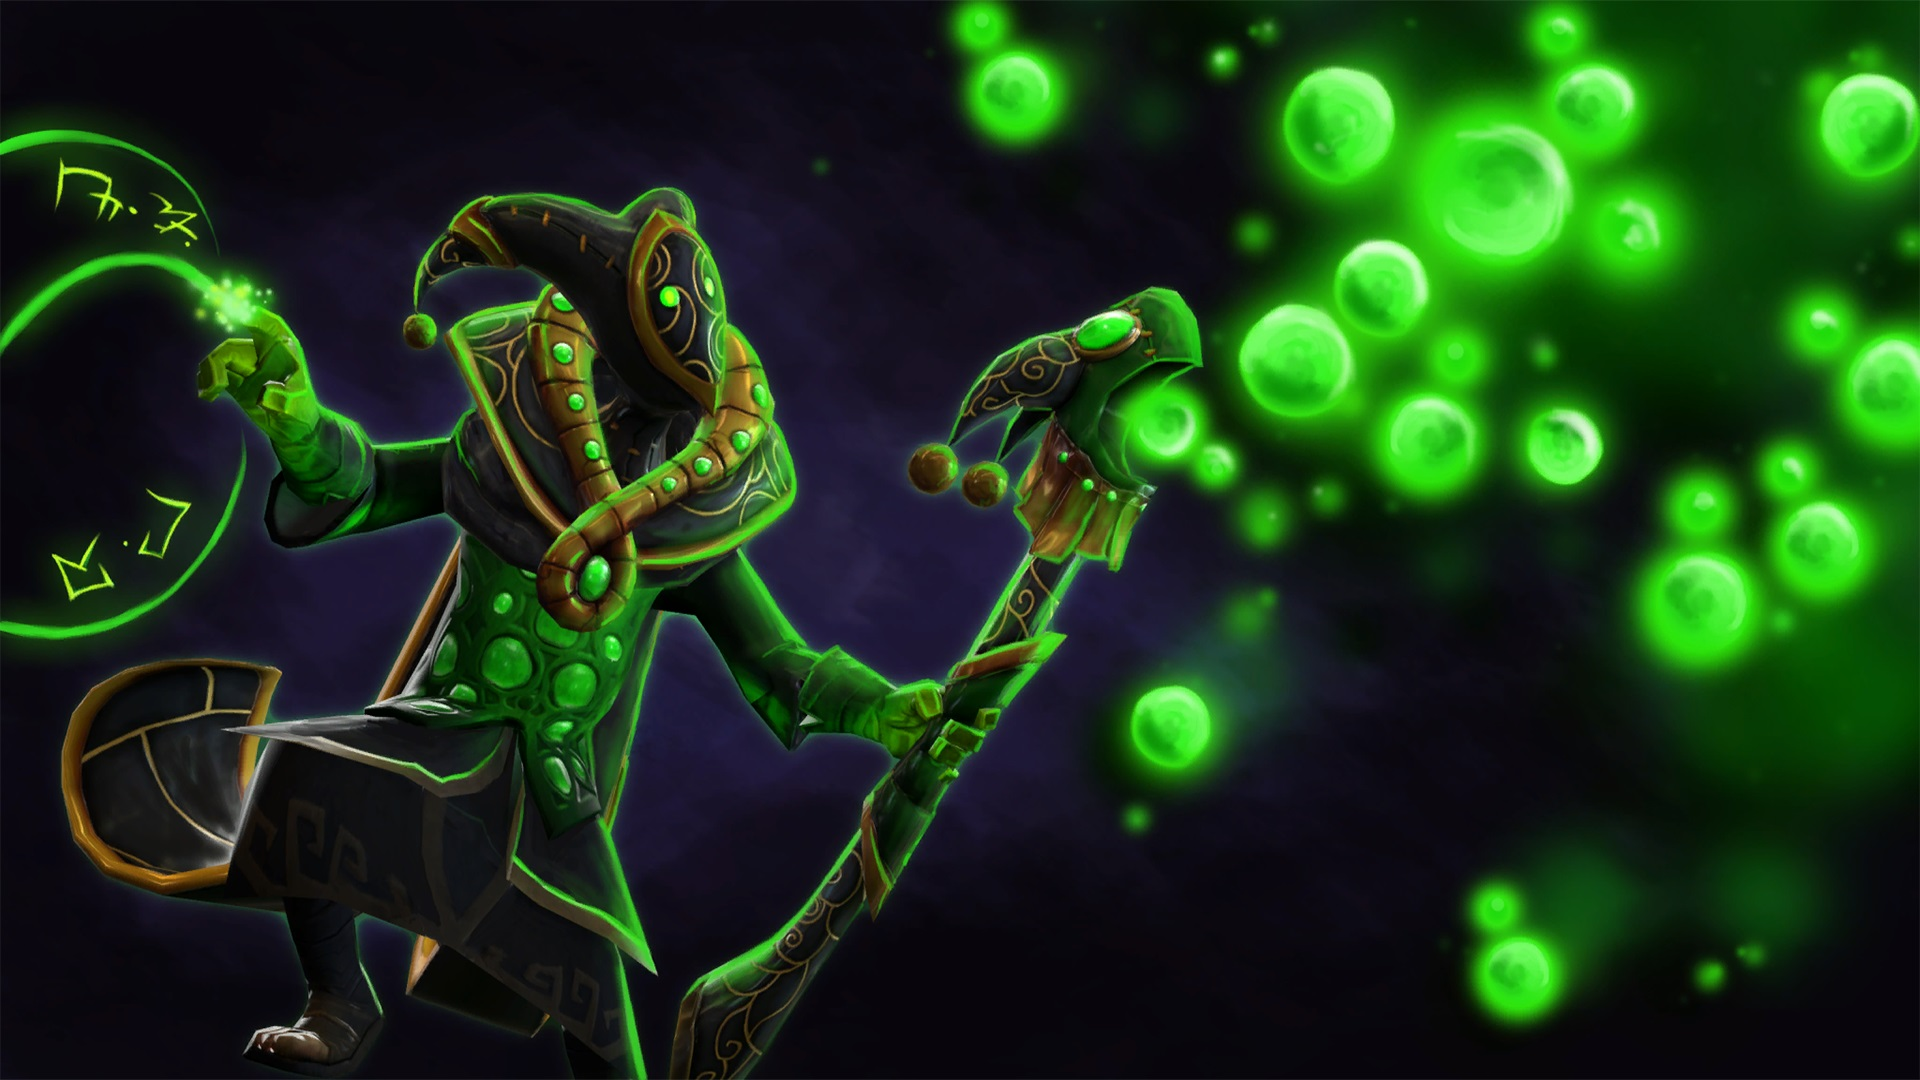 Rubick Wandering Harlequin's Regalia  Dota 2 best wallpapers